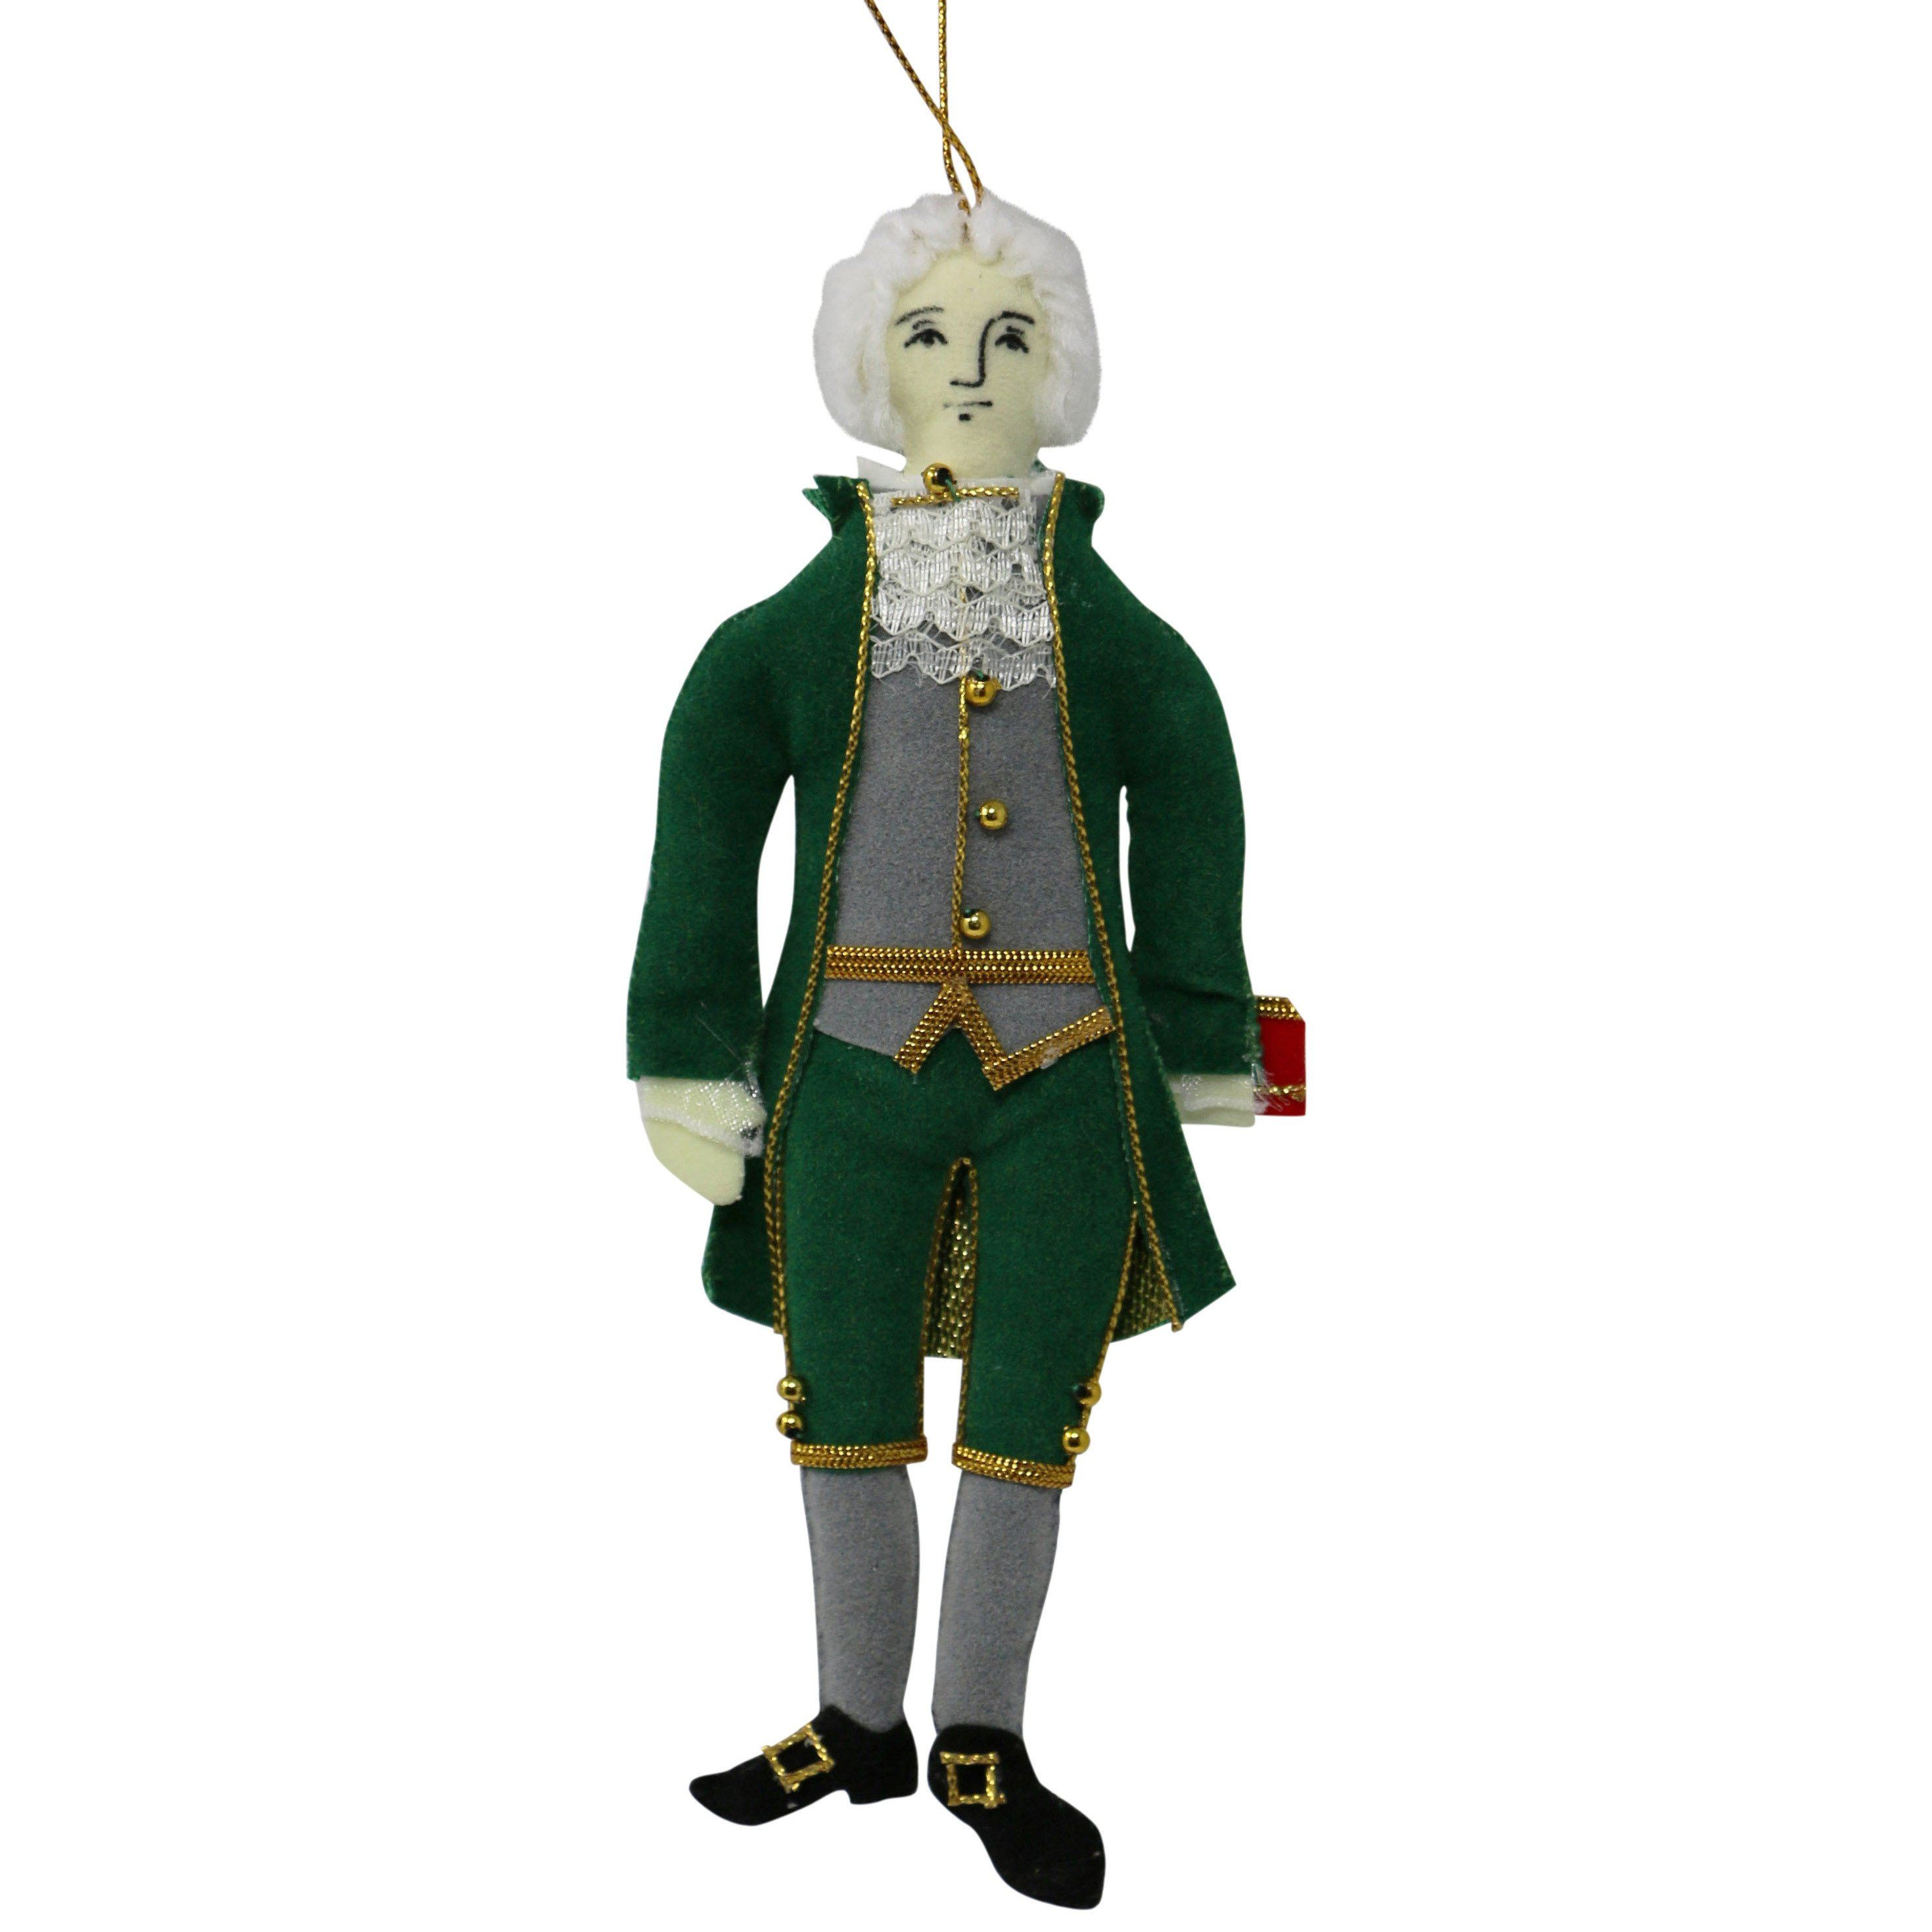 Thomas Jefferson Ornament